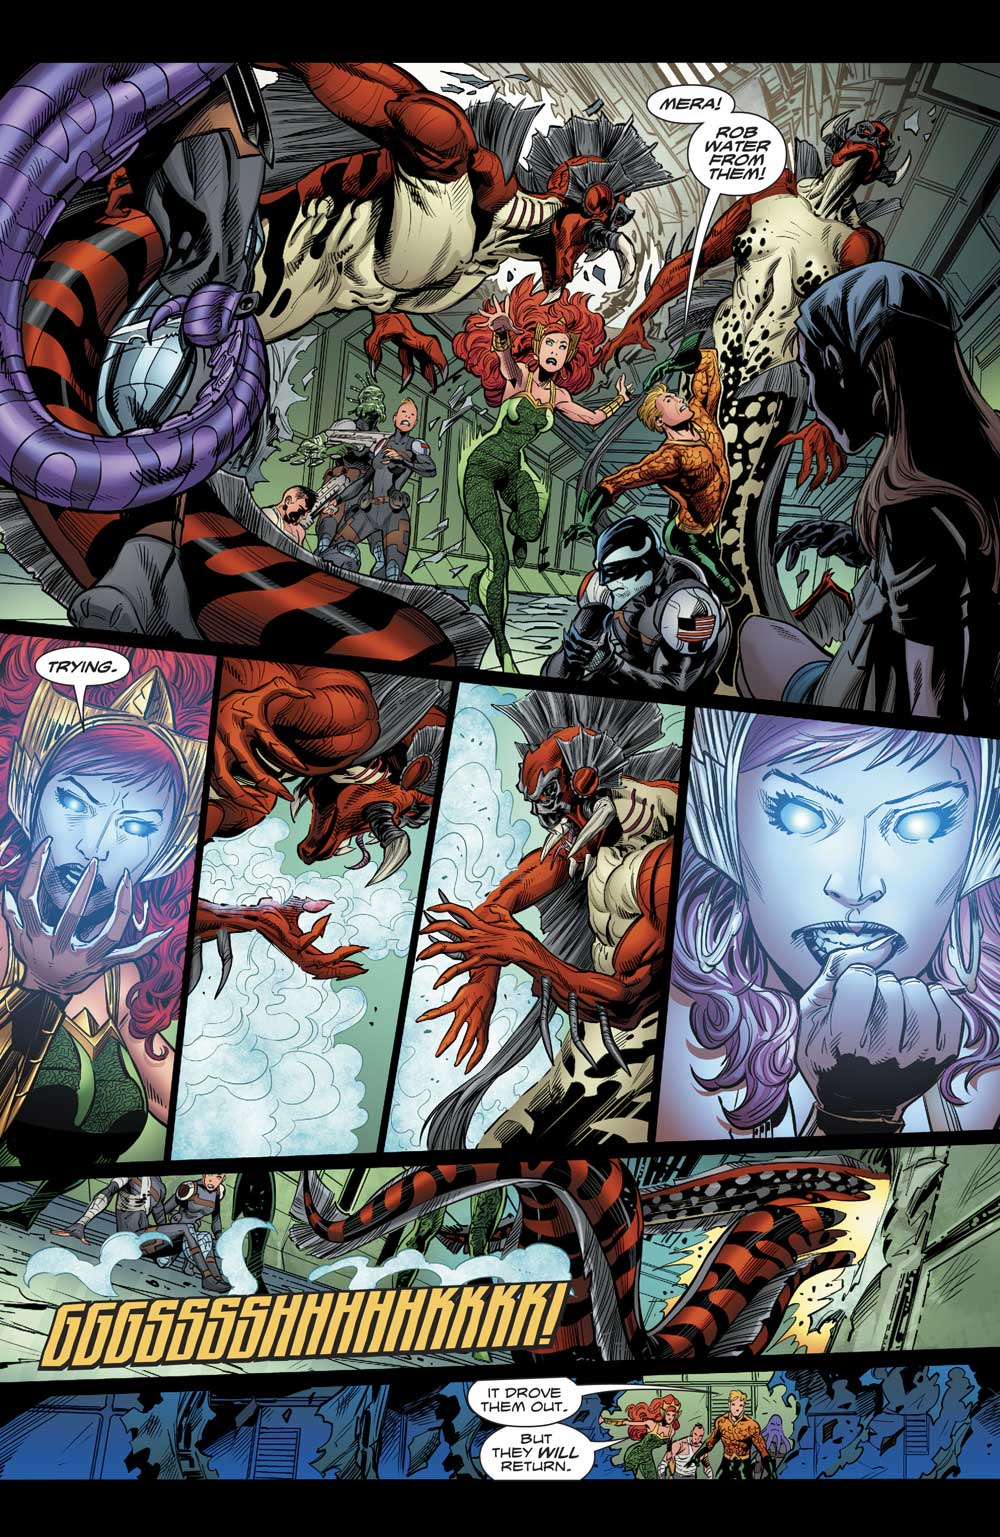 Aquaman #22 by Dan Abnett and Philippe Briones